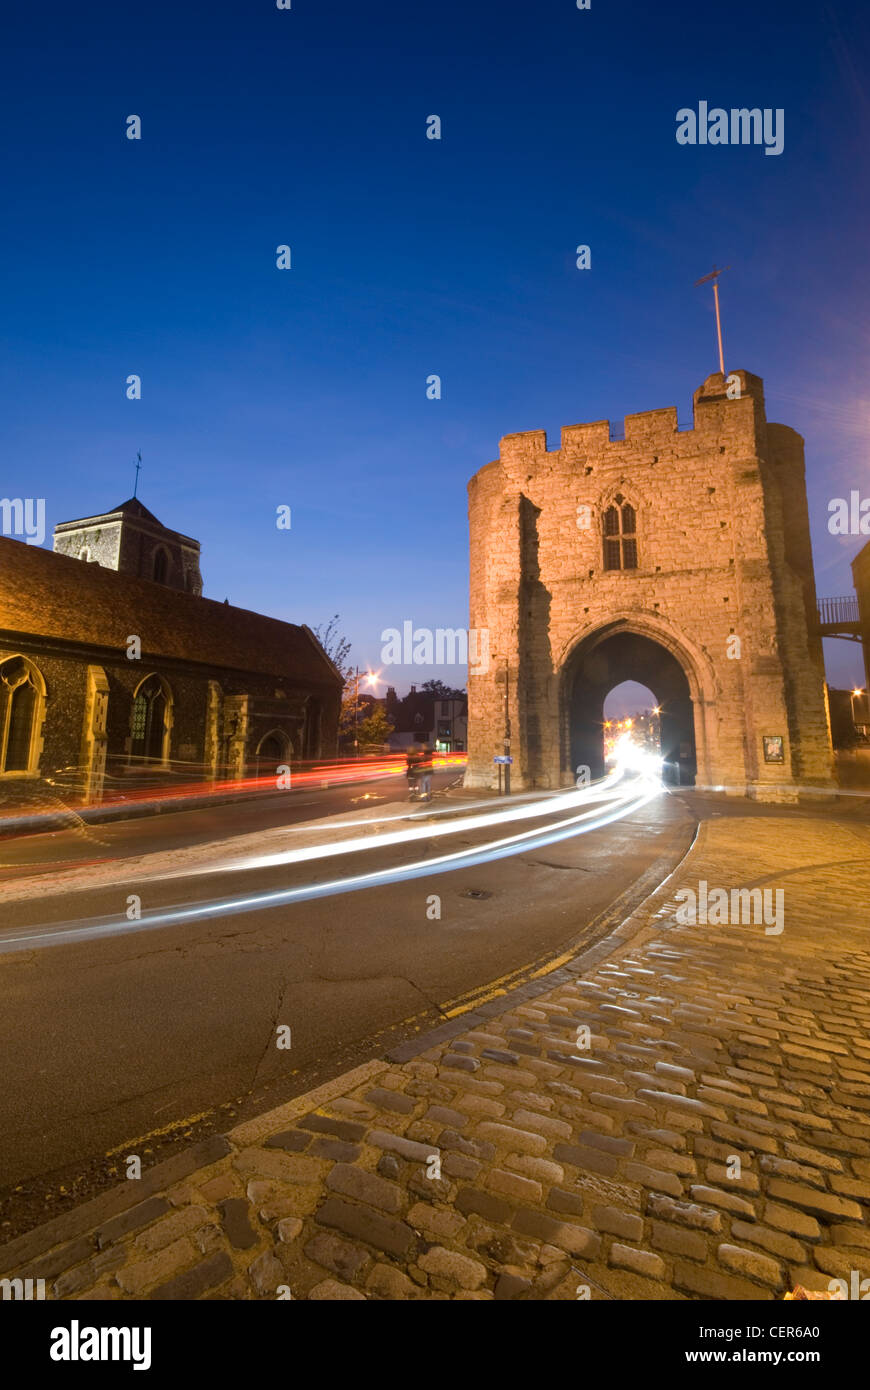 The Westgate Tower in Canterbury lit up at night with trials of light from passing traffic. - Stock Image